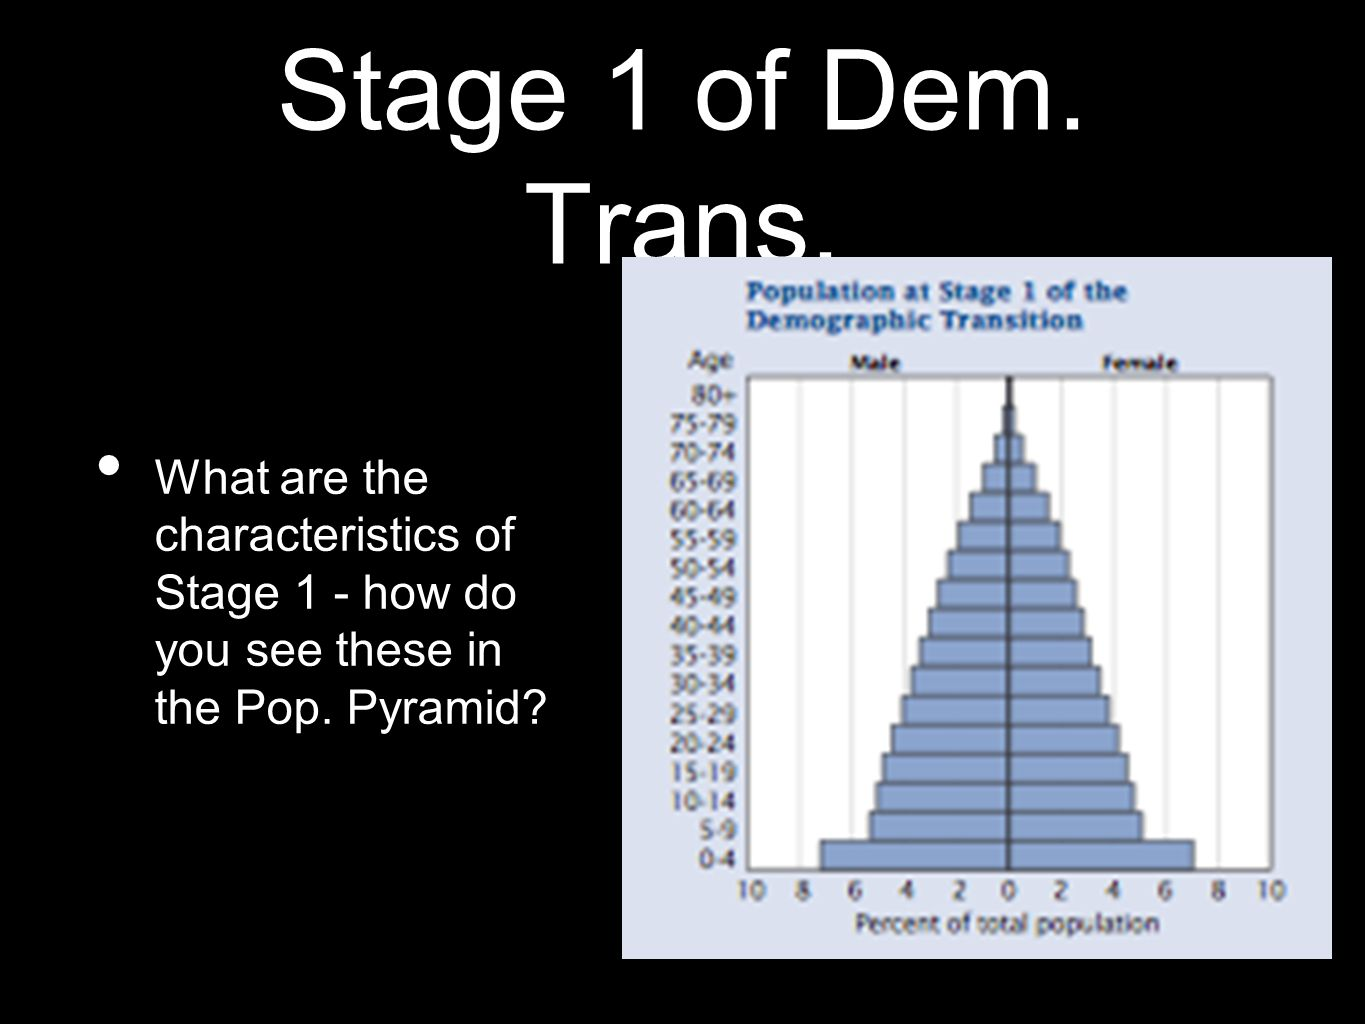 Stage 1 of Dem. Trans.